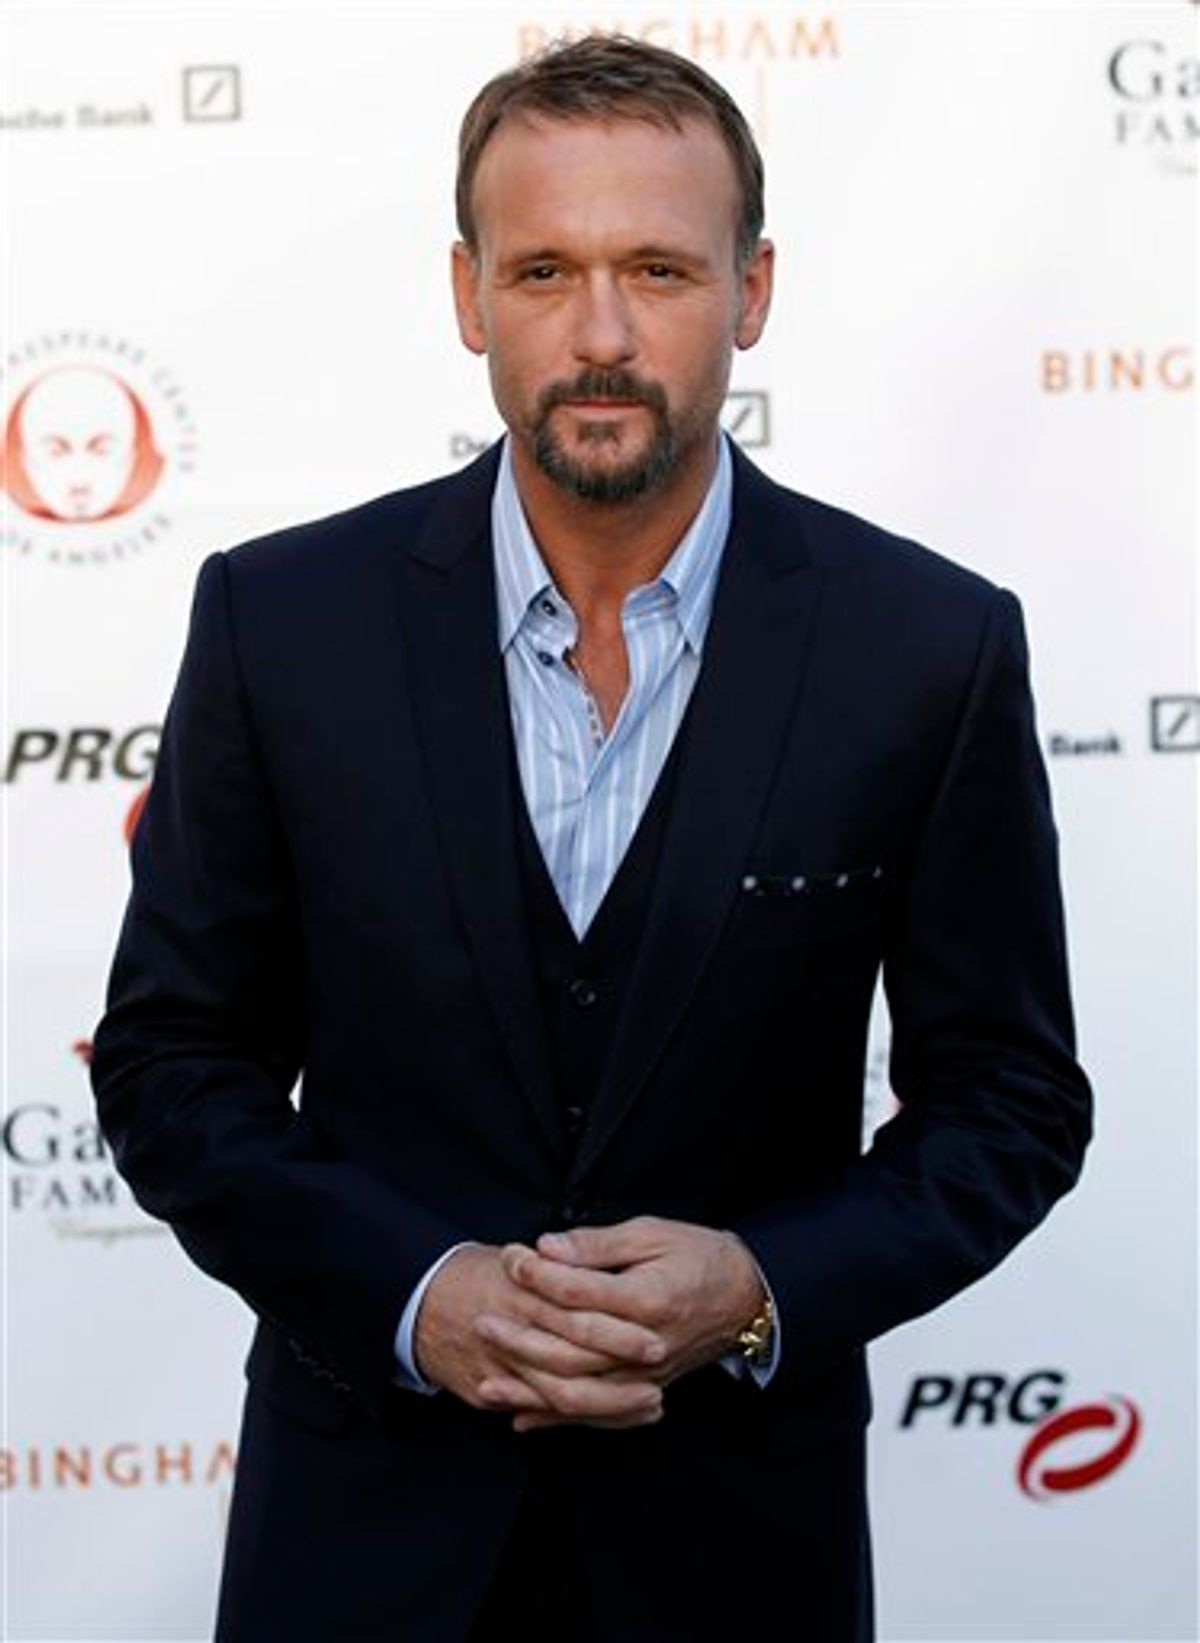 FILE - In this May 9, 2011 file photo, actor and musician Tim McGraw arrives at The Shakespeare Center of Los Angeles' 21st Annual Simply Shakespeare Fundraiser in Los Angeles.  Curb Records  has filed a breach-of-contract lawsuit against McGraw, claiming the country superstar failed to provide a fifth and final album under their deal that met contractual obligations by an April deadline.   (AP Photo/Matt Sayles, file) (AP)